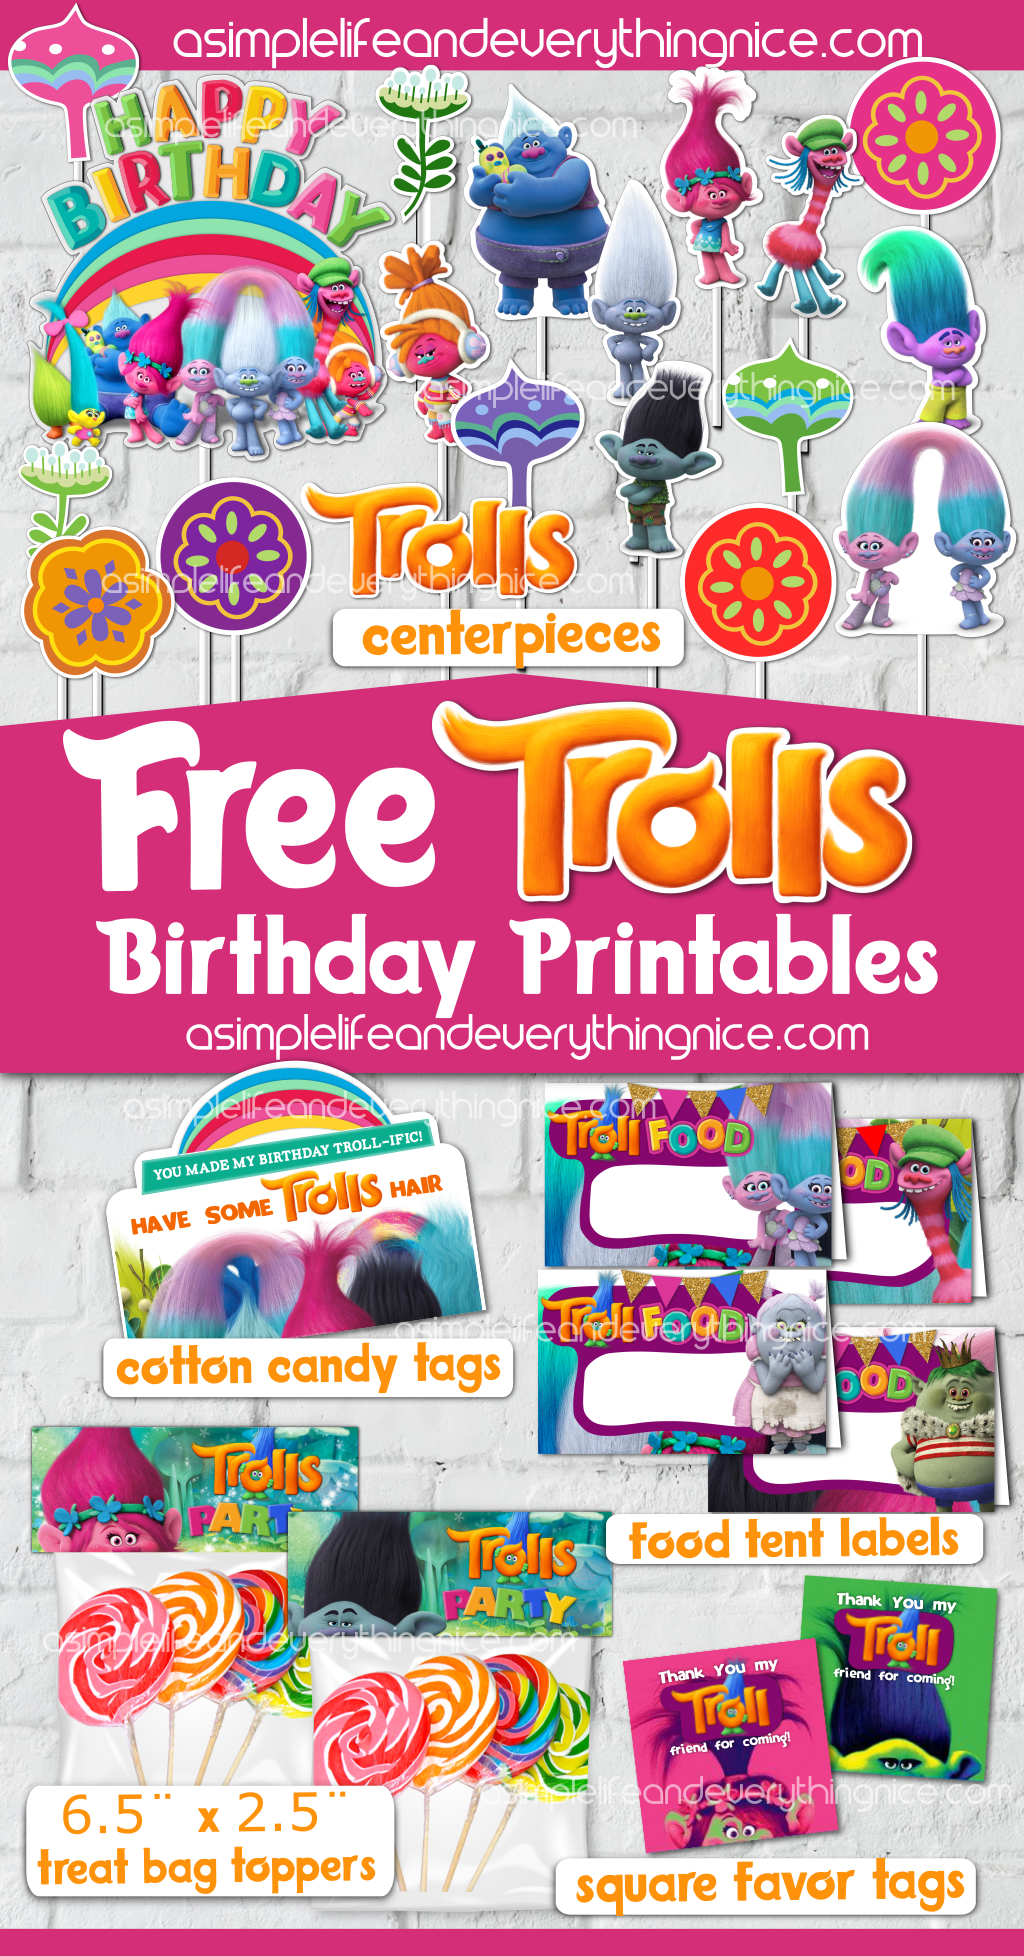 Free Trolls Birthday Party Printables A Simple Life And Everything Nice